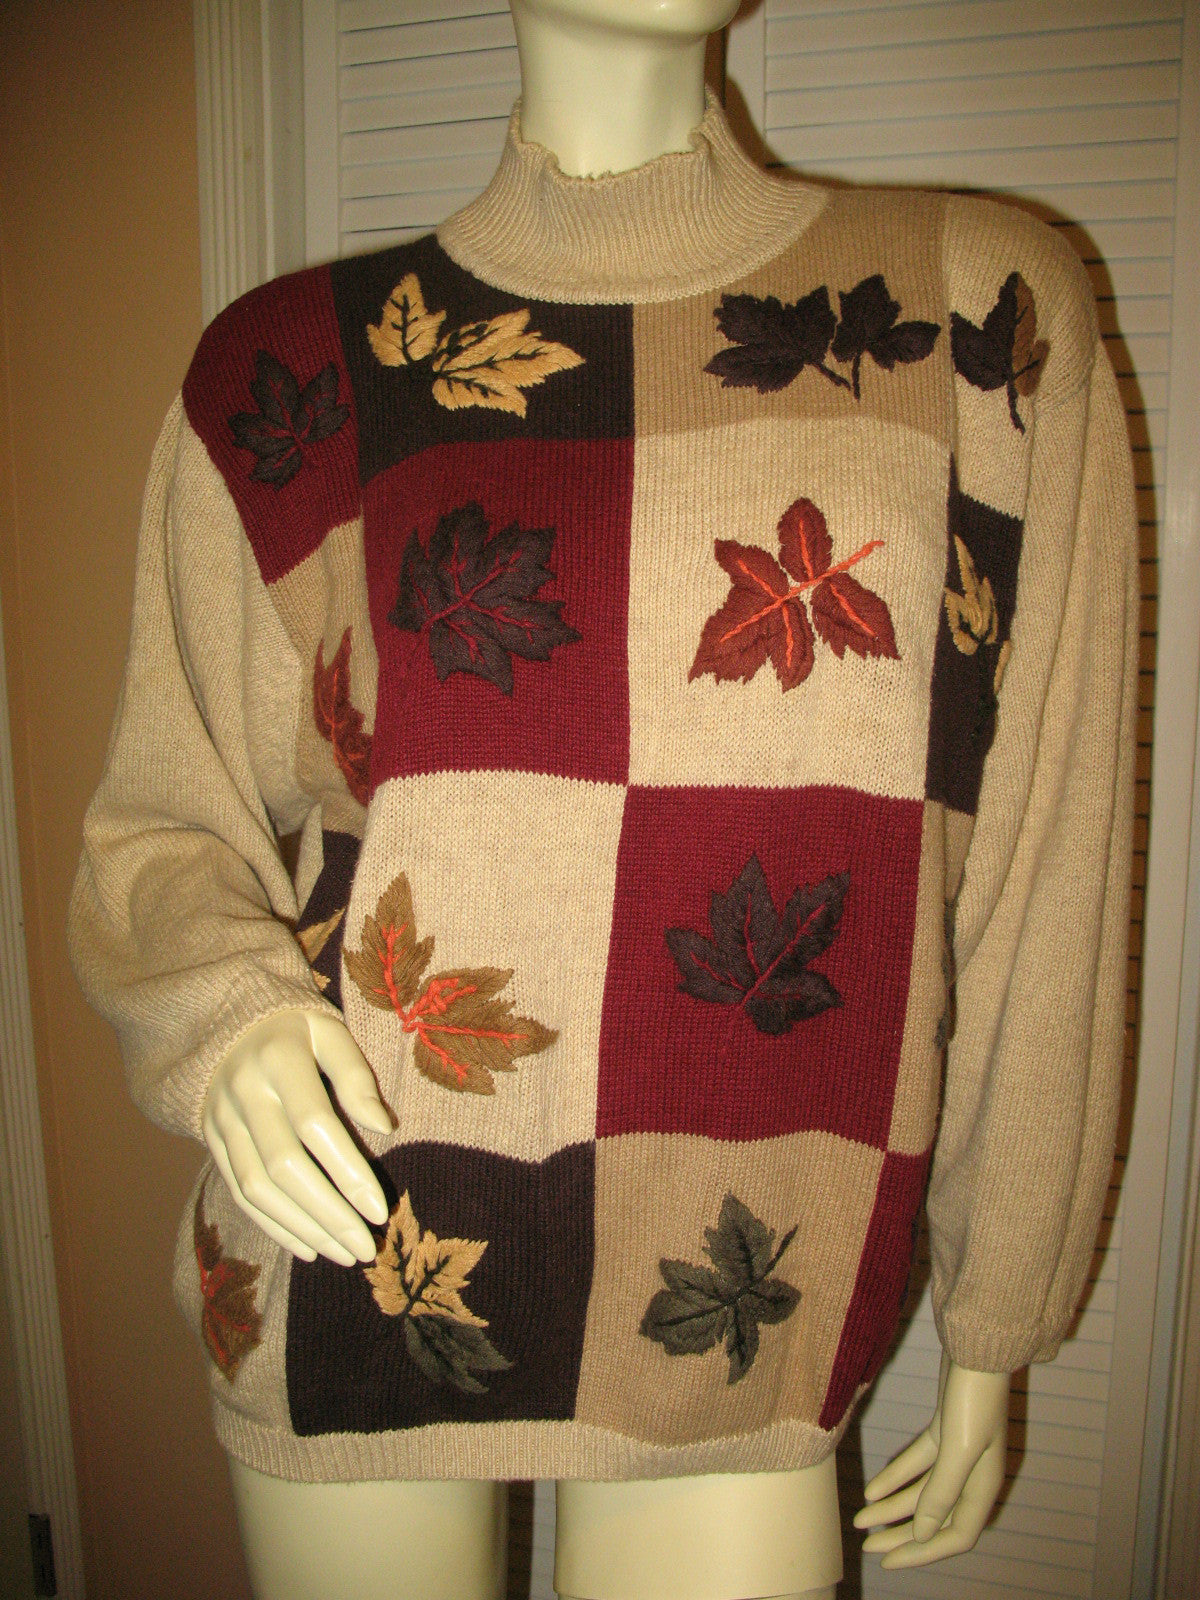 ede7b8de5c DRESSBARN Womens Sweaters Pullover Crew Neck Turtleneck Knit Sweater Top  Long Sleeve Size 18 20 Beige Multicolor Fall Embroidery Floral